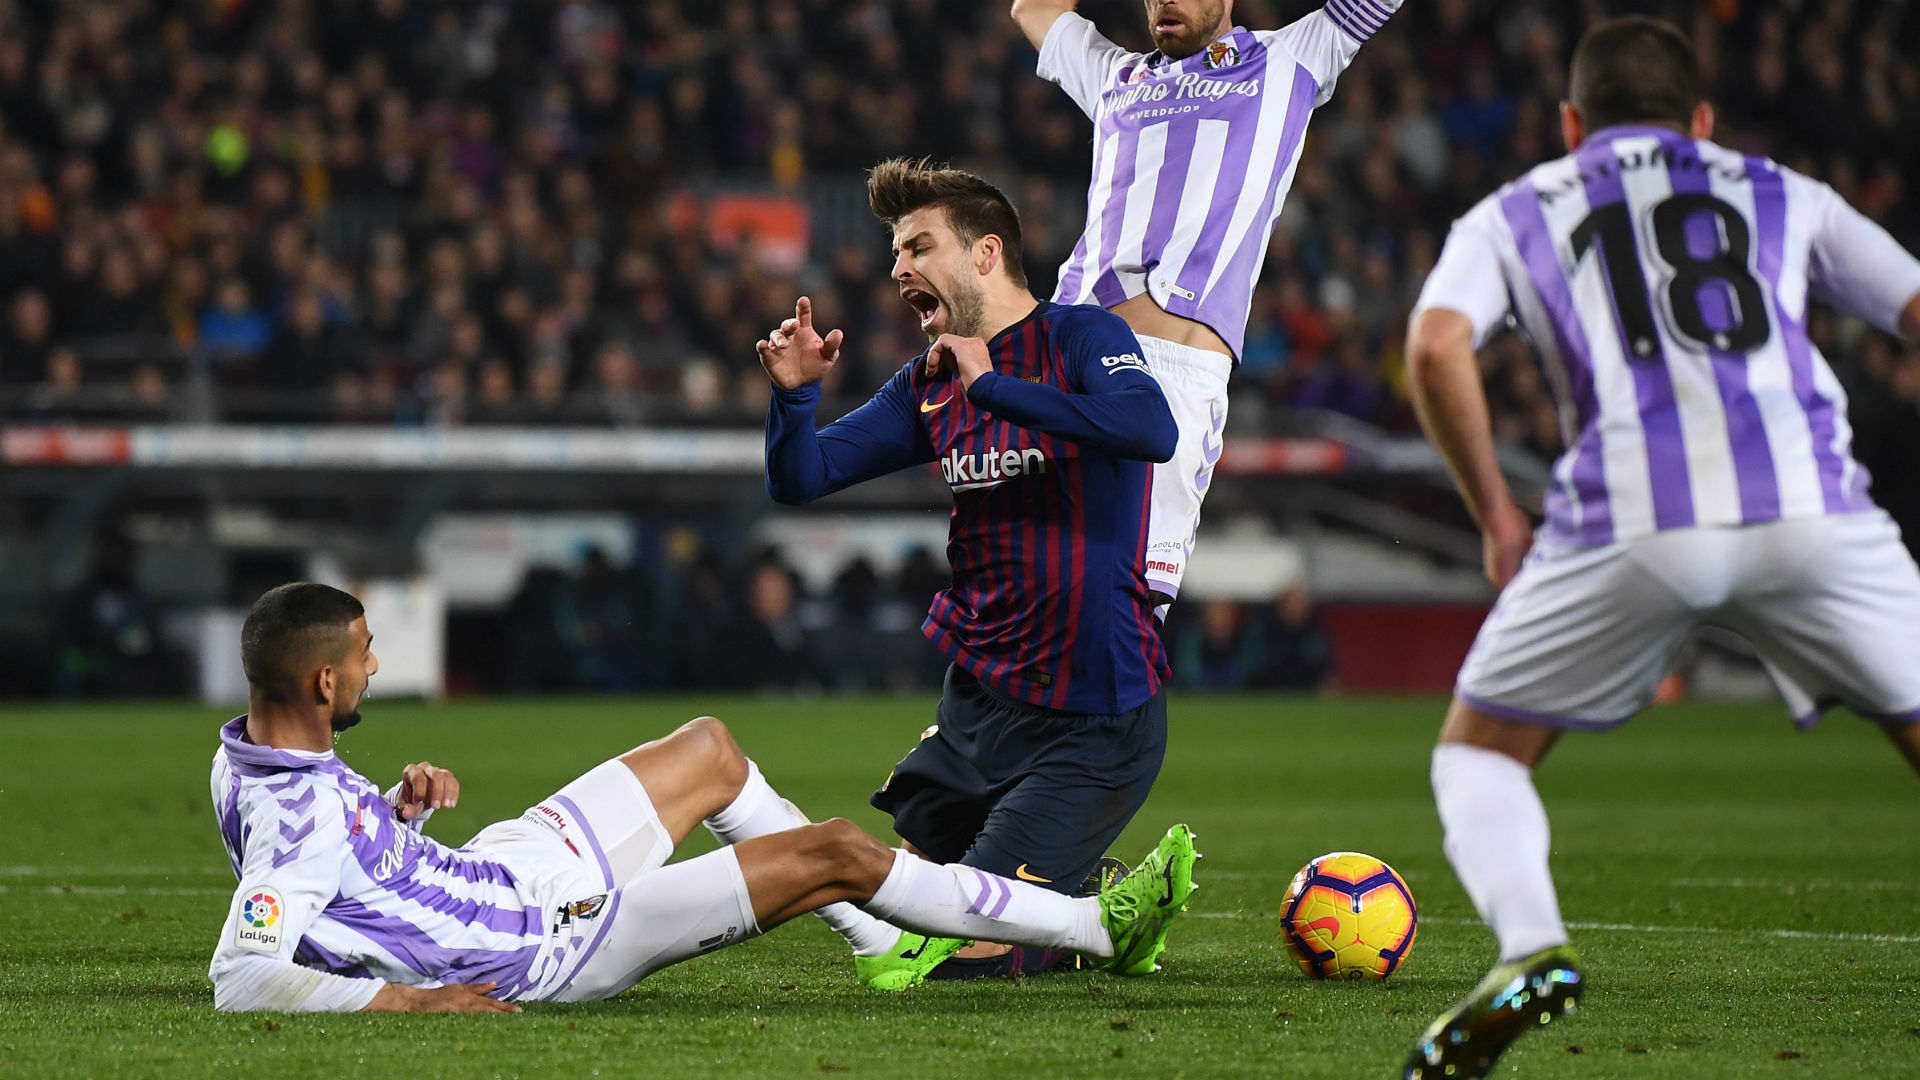 Lyon will punish Barca in this form, Pique warns